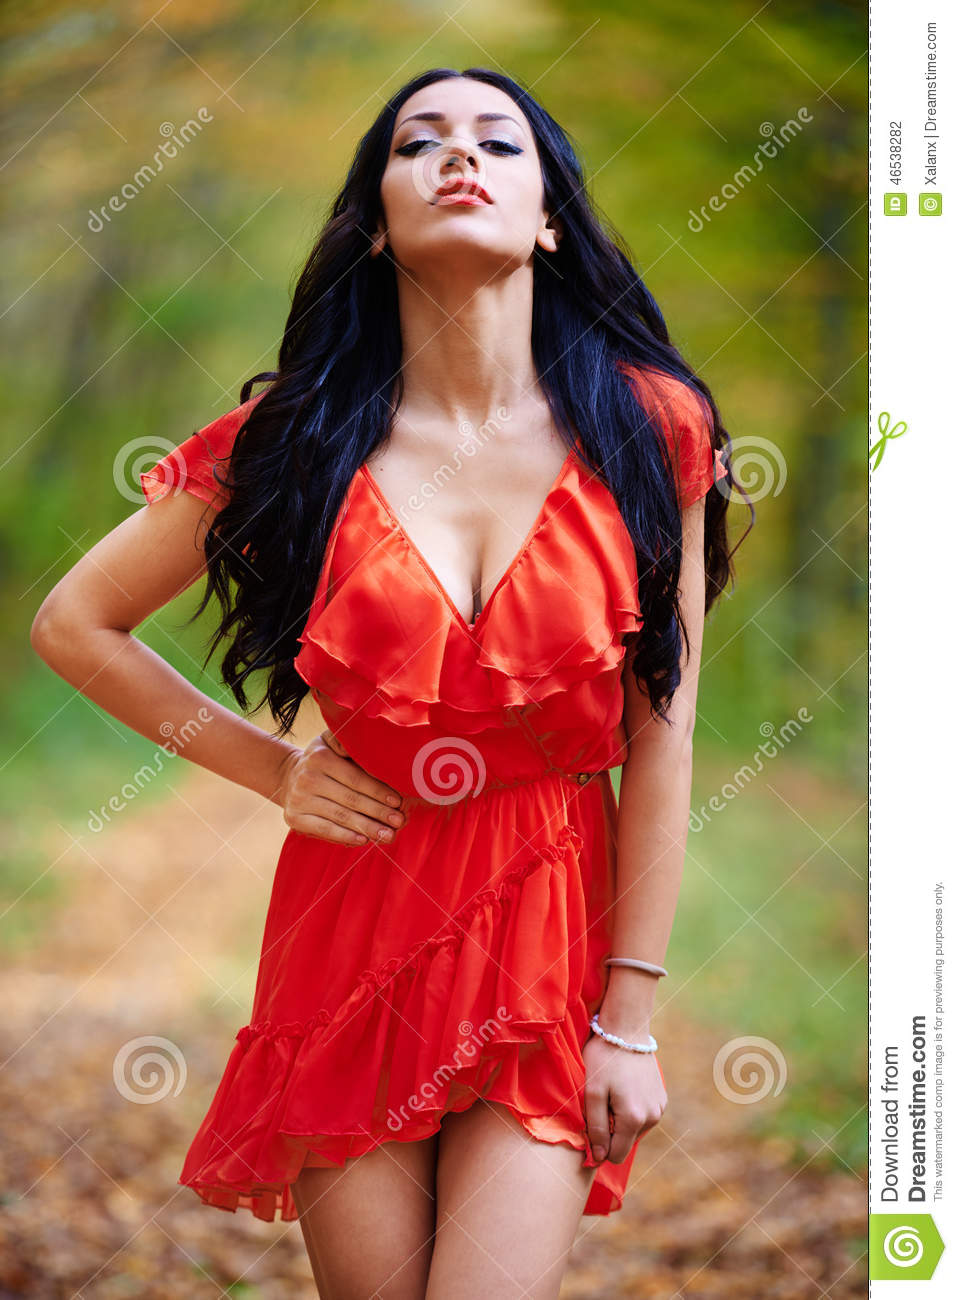 lady in red dress stock photo image 46538282. Black Bedroom Furniture Sets. Home Design Ideas